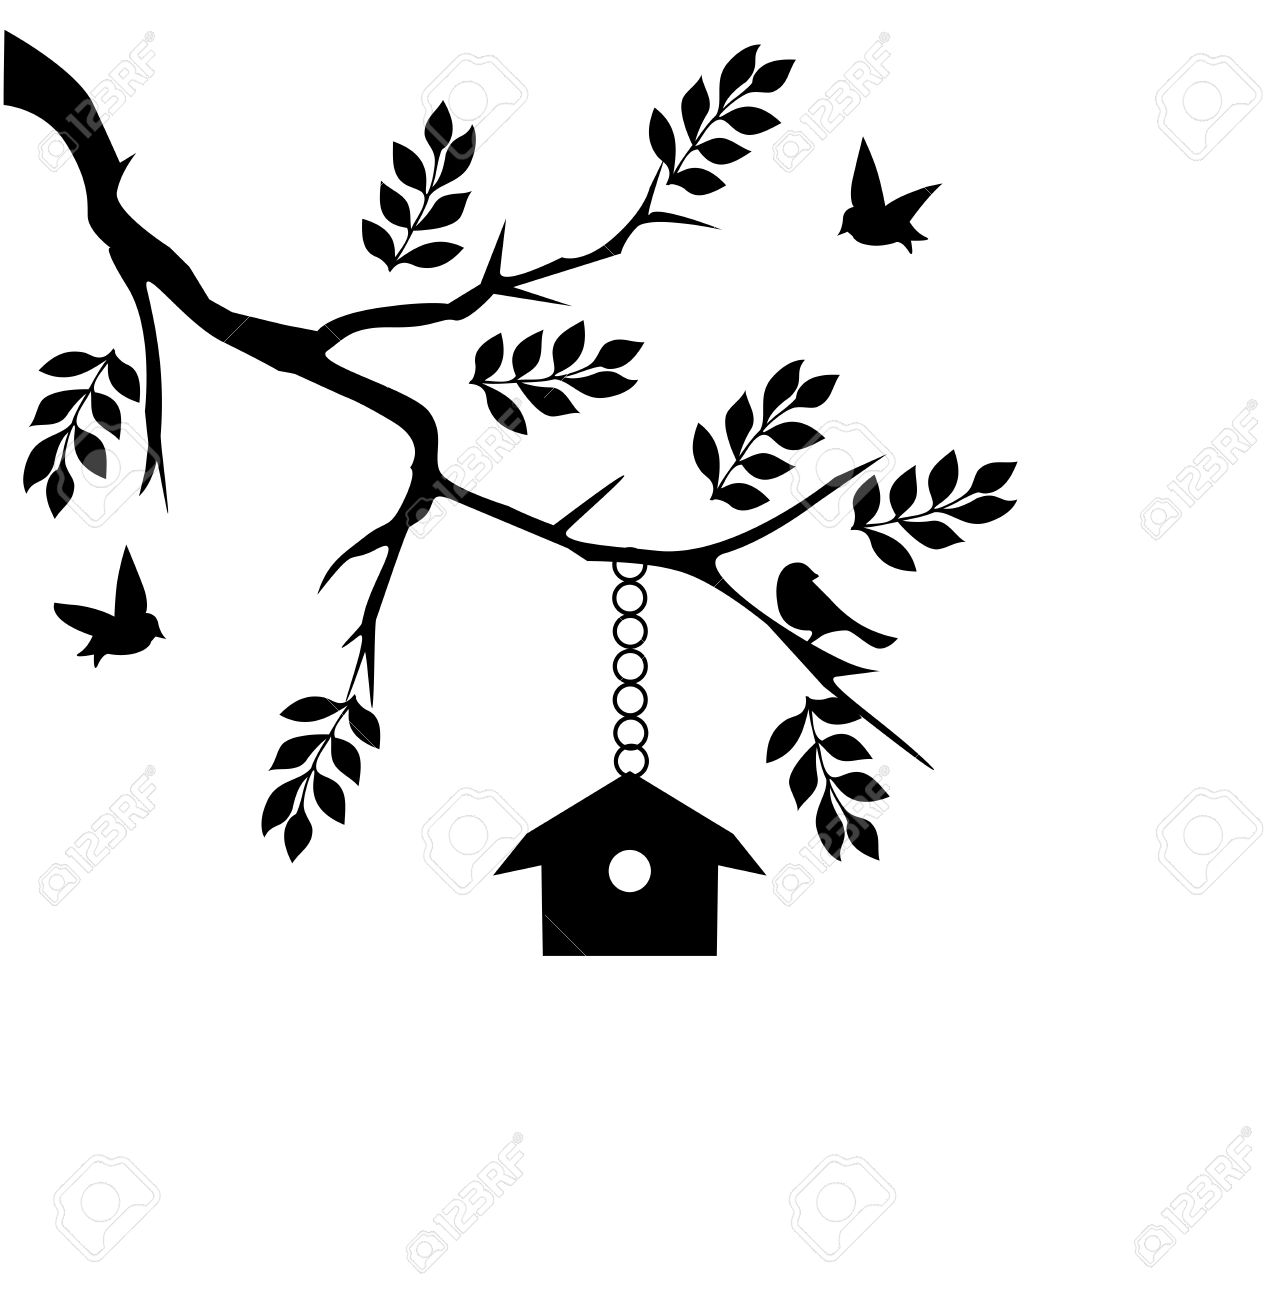 Tree Branch Clipart